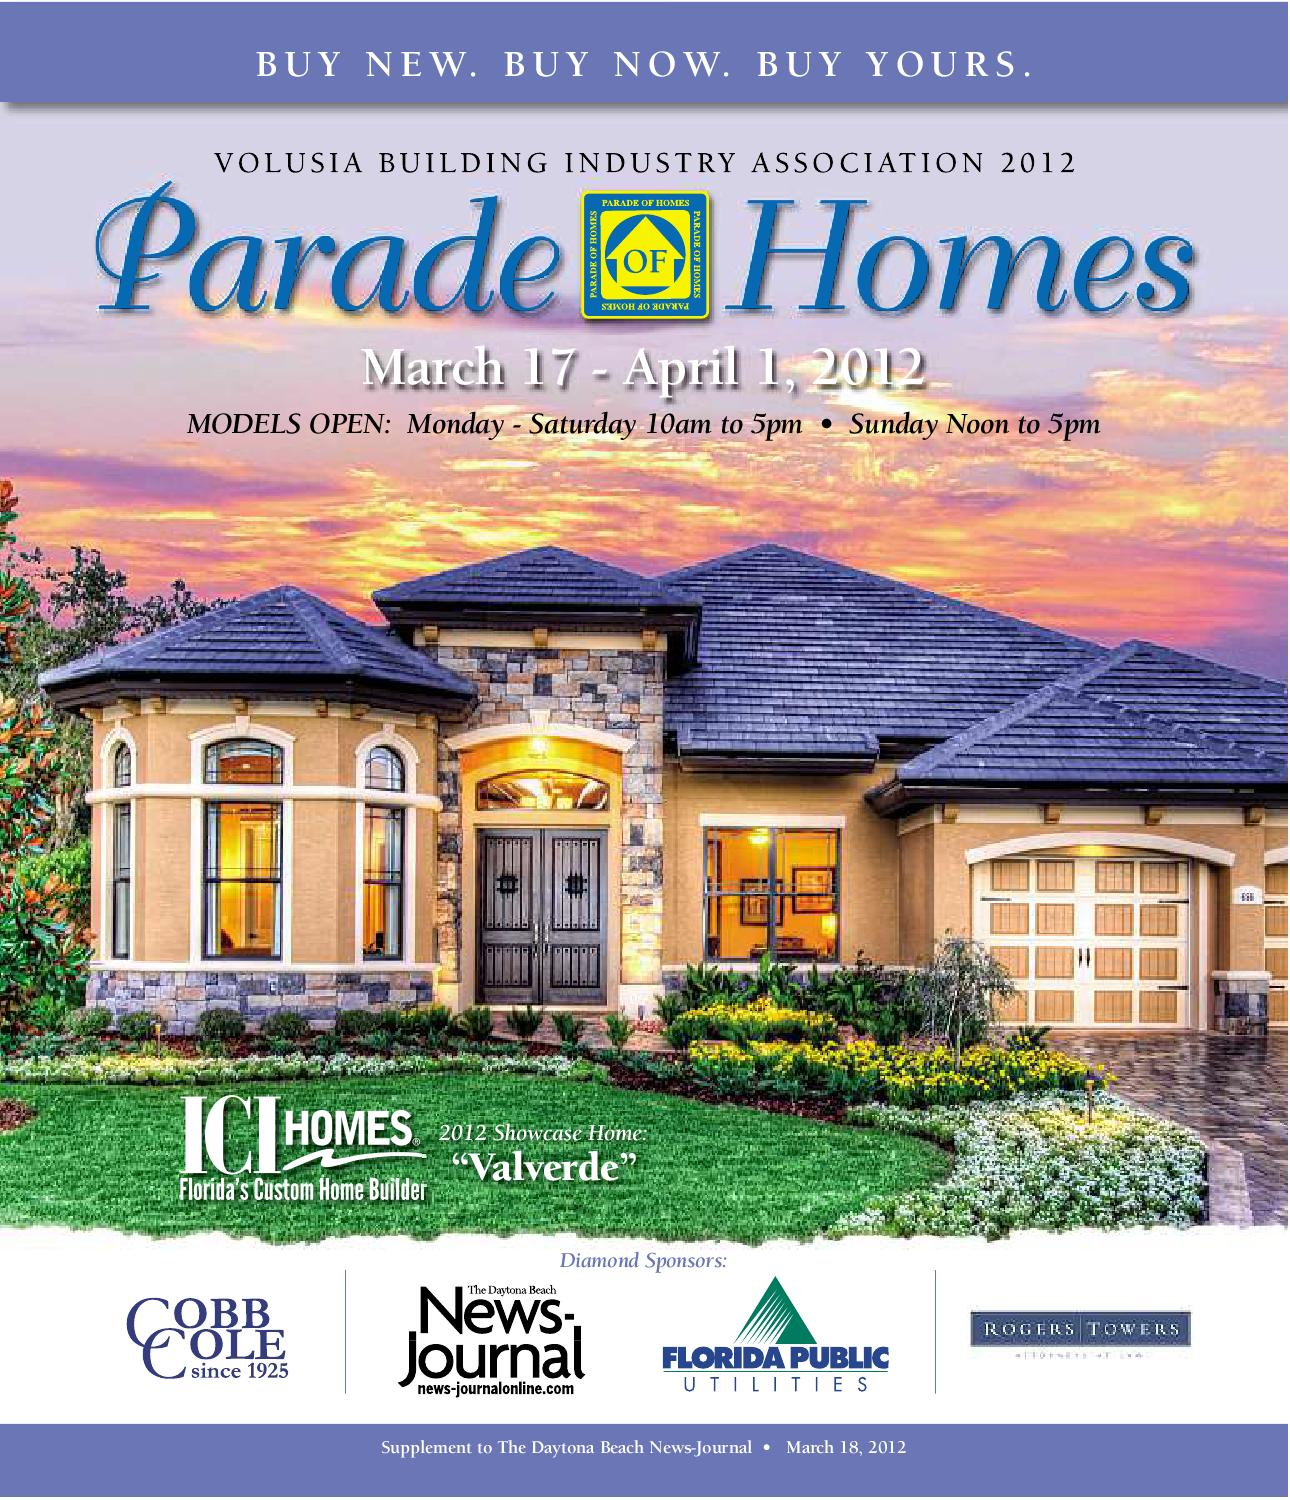 Volusia Parade Of Homes 2012 By Zgraph, Inc.